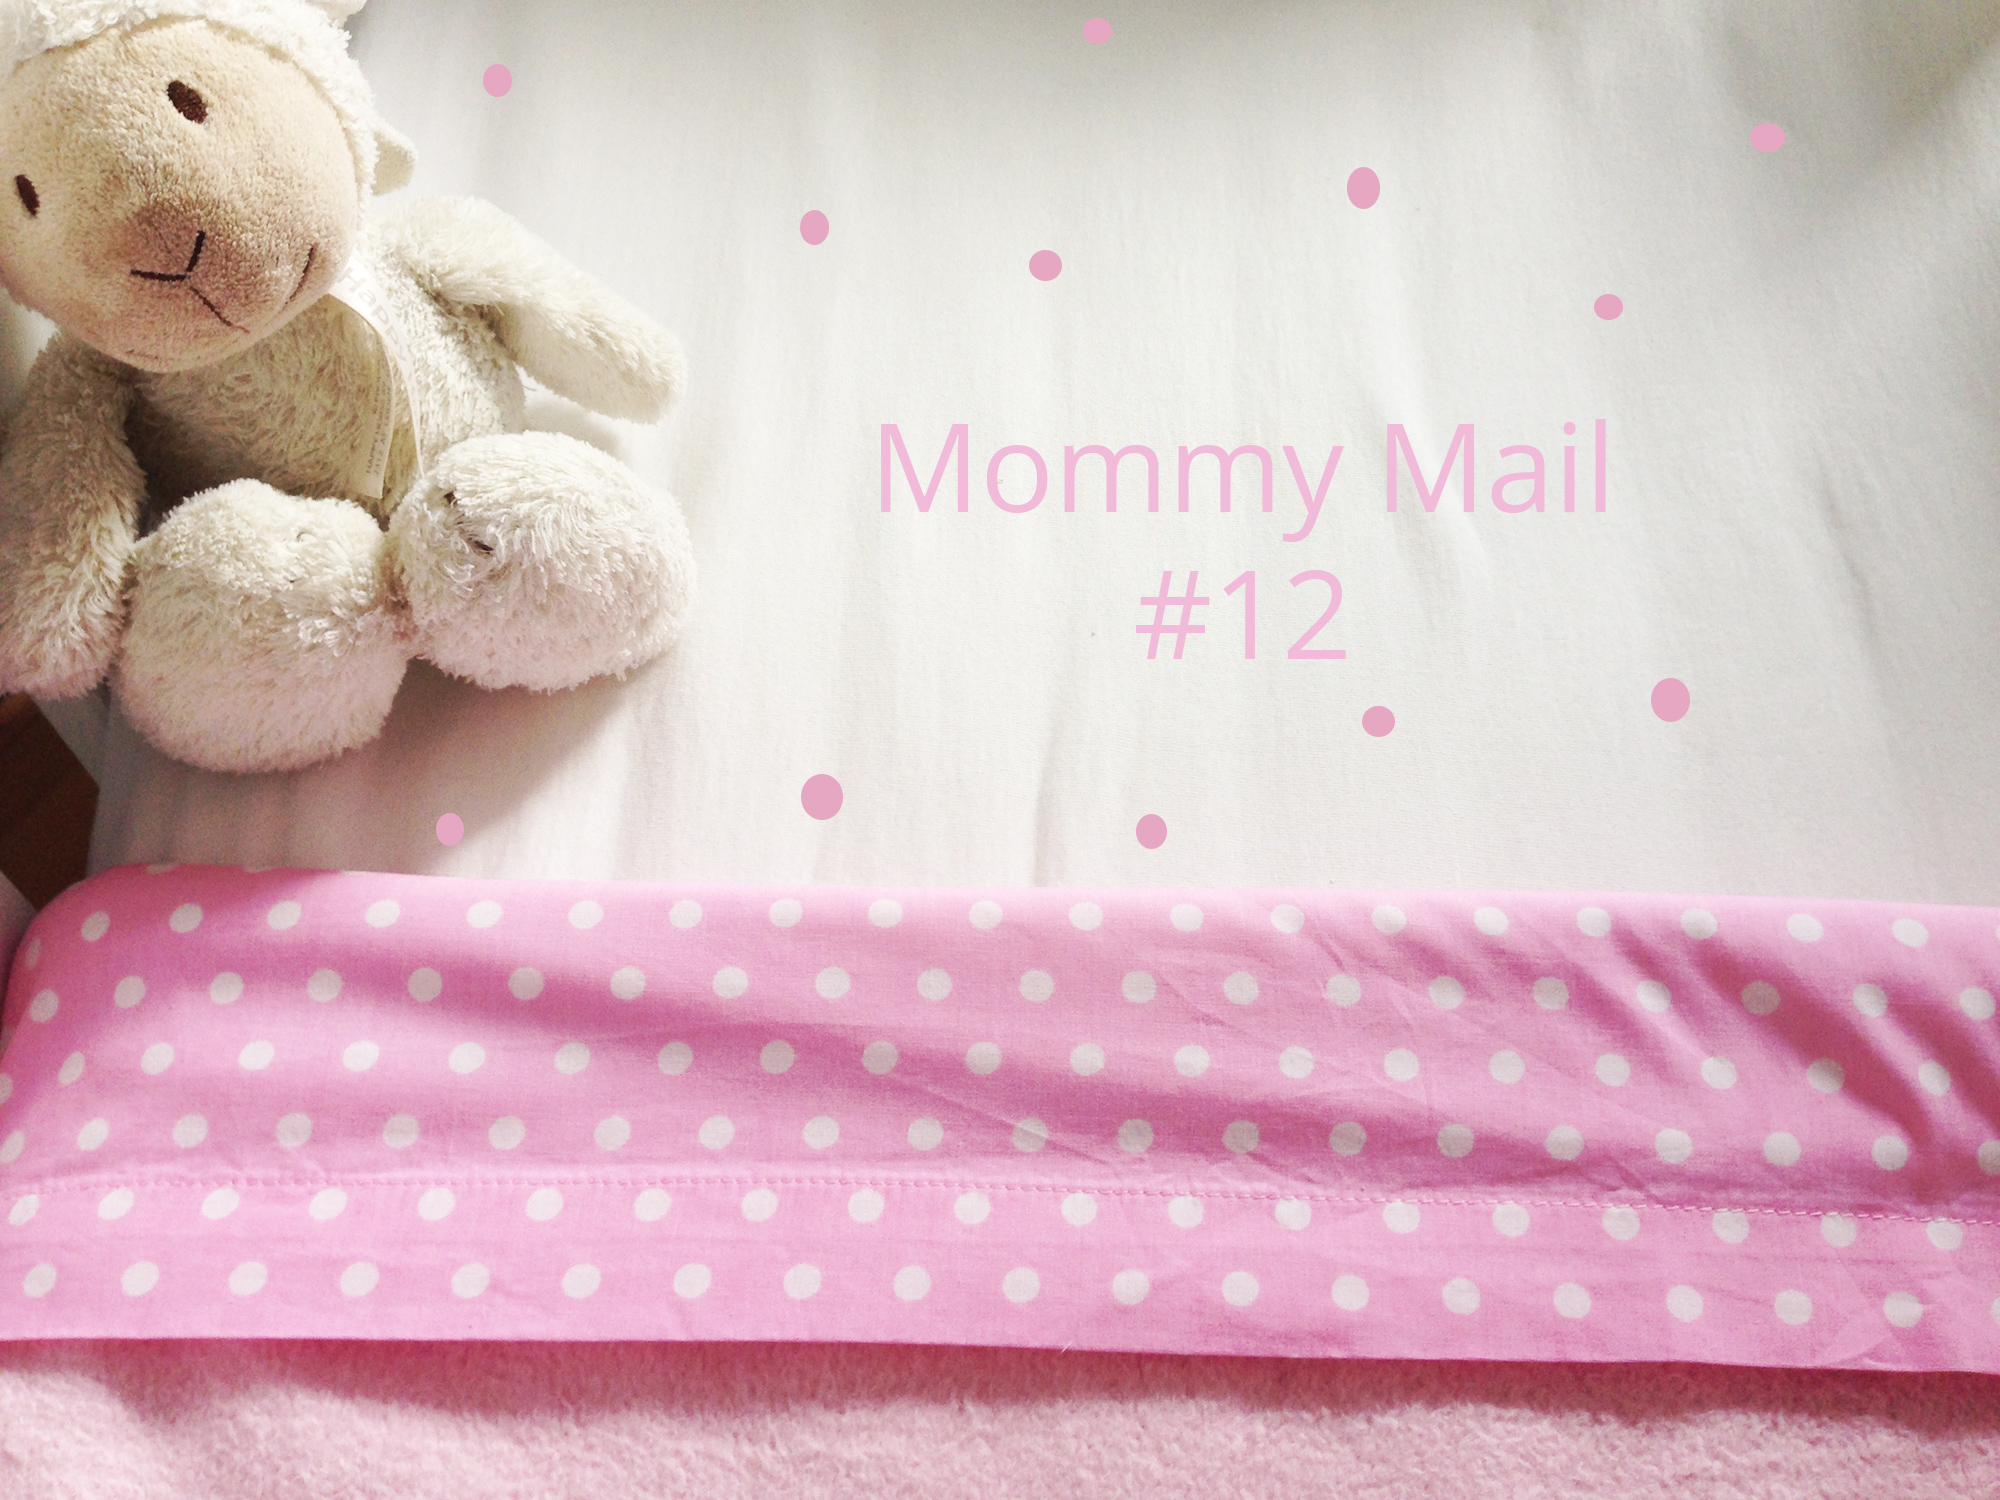 Mommymail! #12